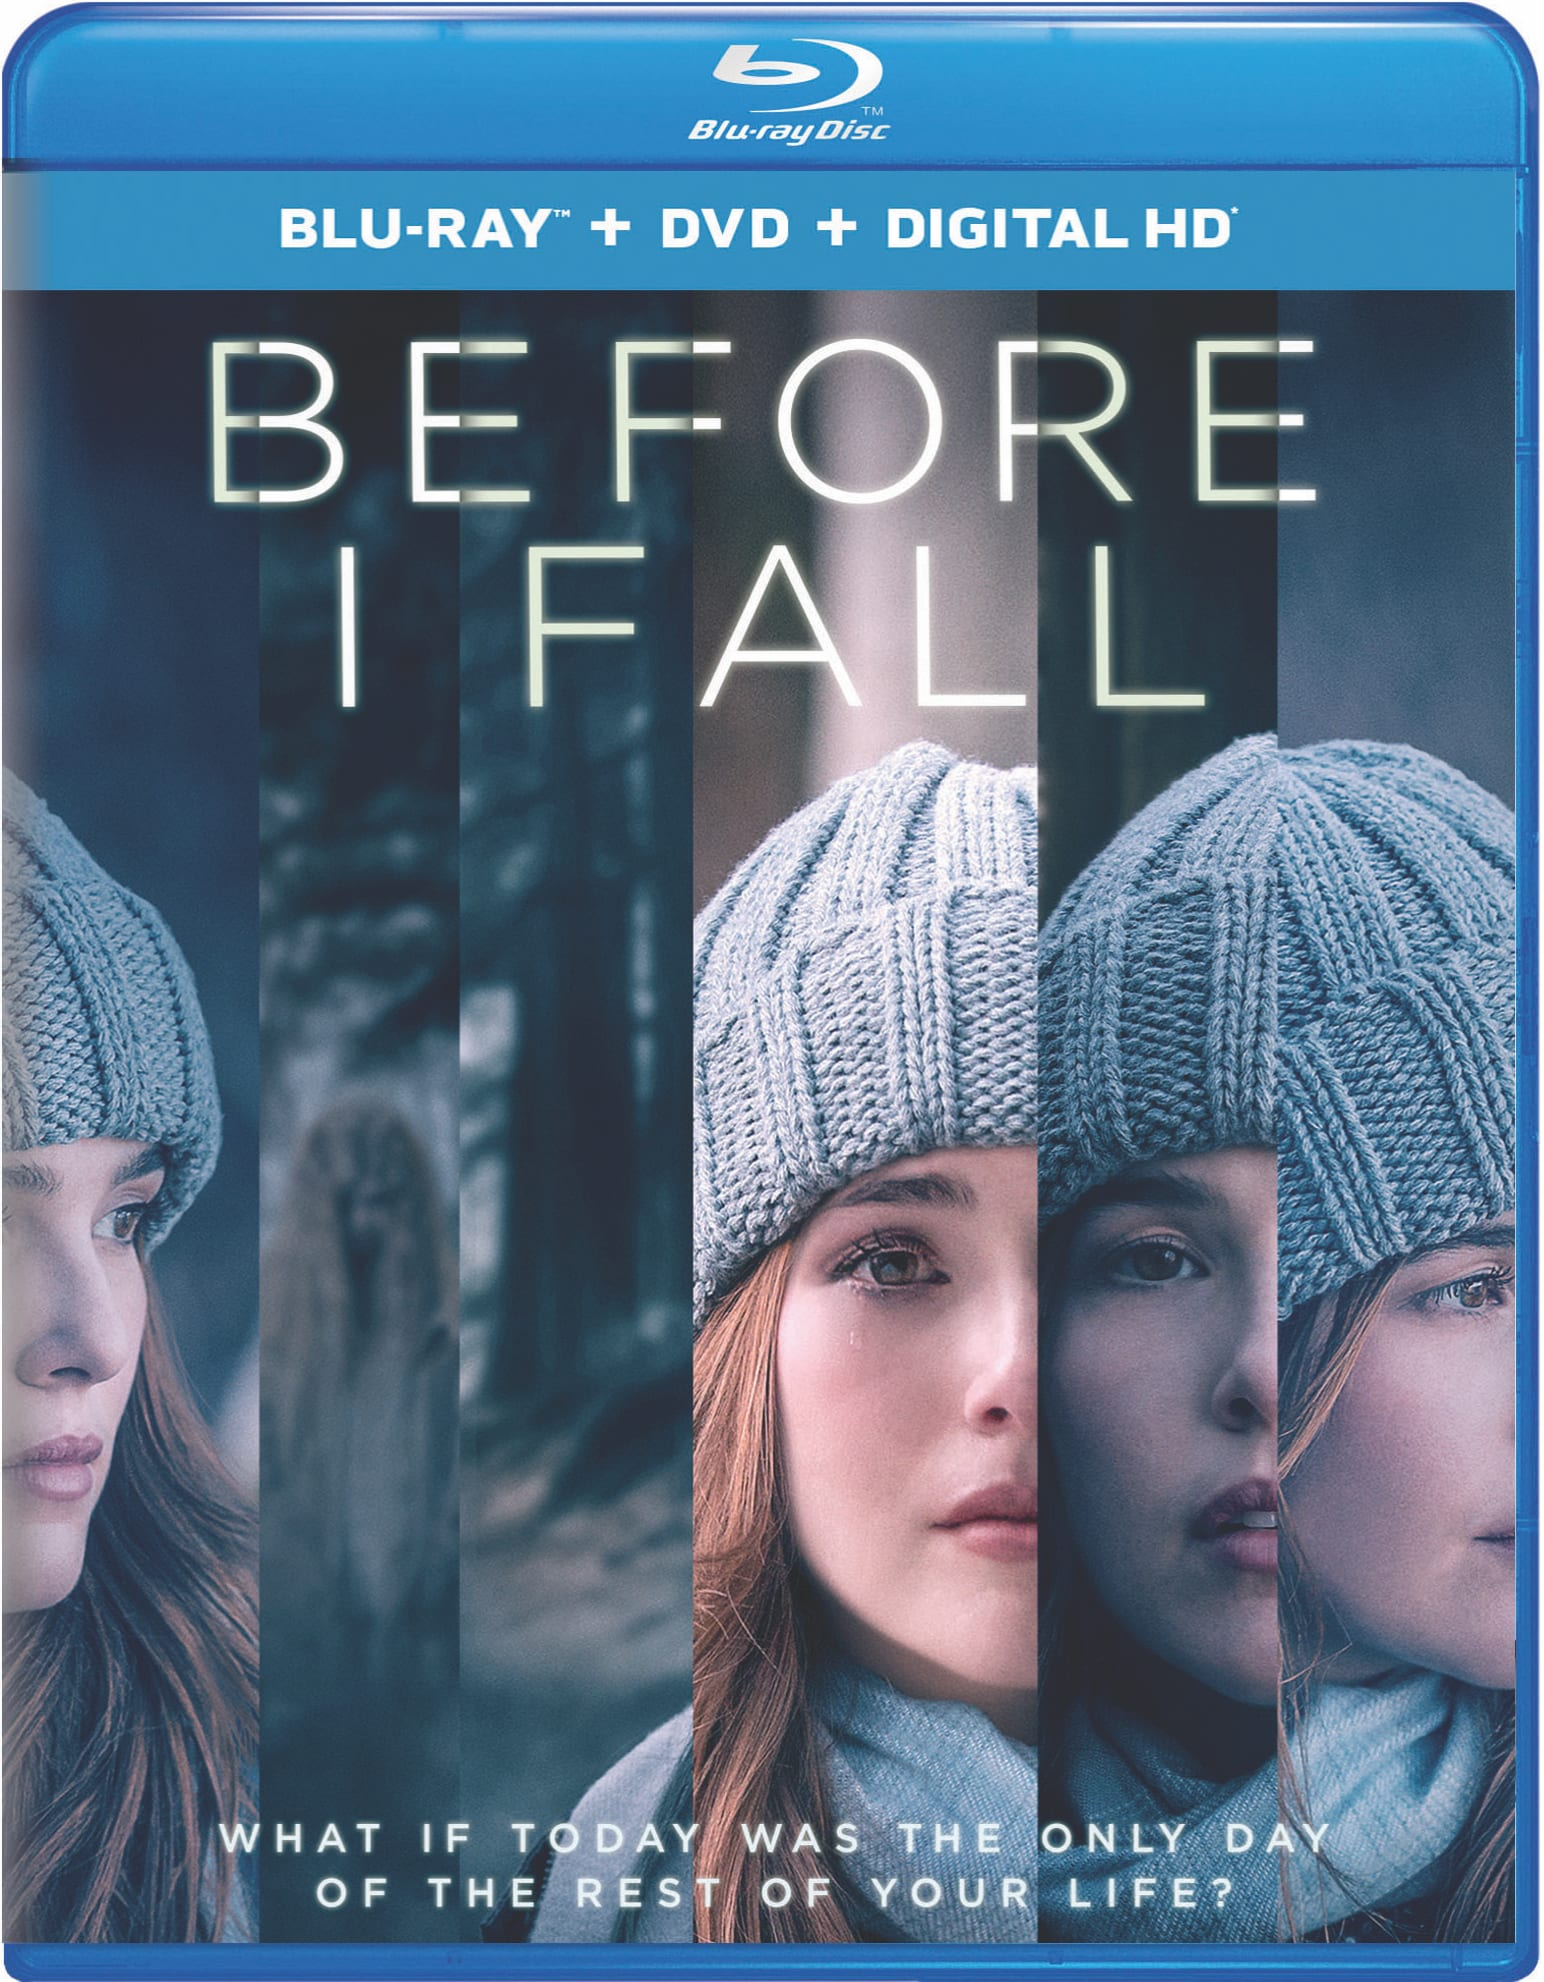 Before I Fall (DVD + Digital) [Blu-ray]